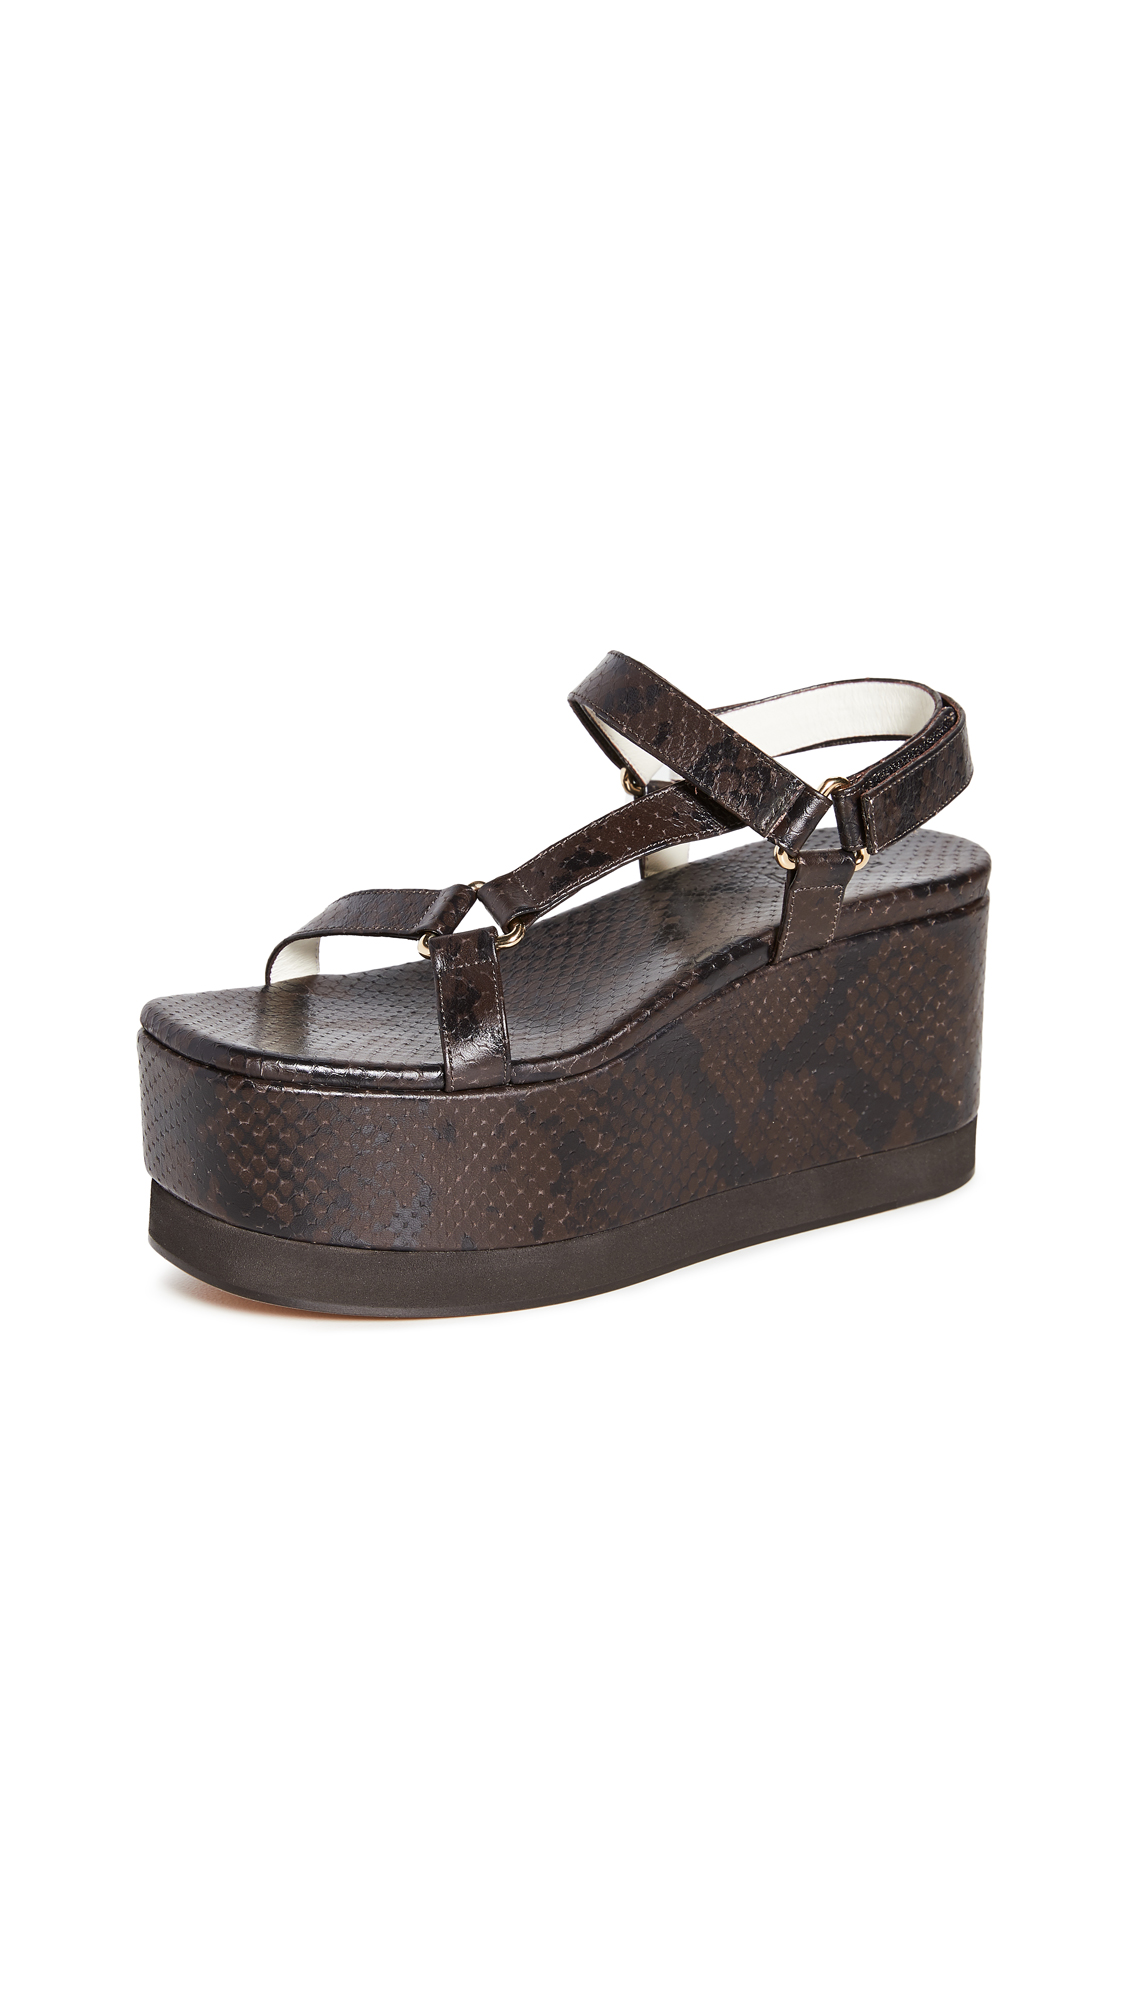 Photo of Tibi Masa Platform Snake Sandals - shop Tibi Sandals, Flat online